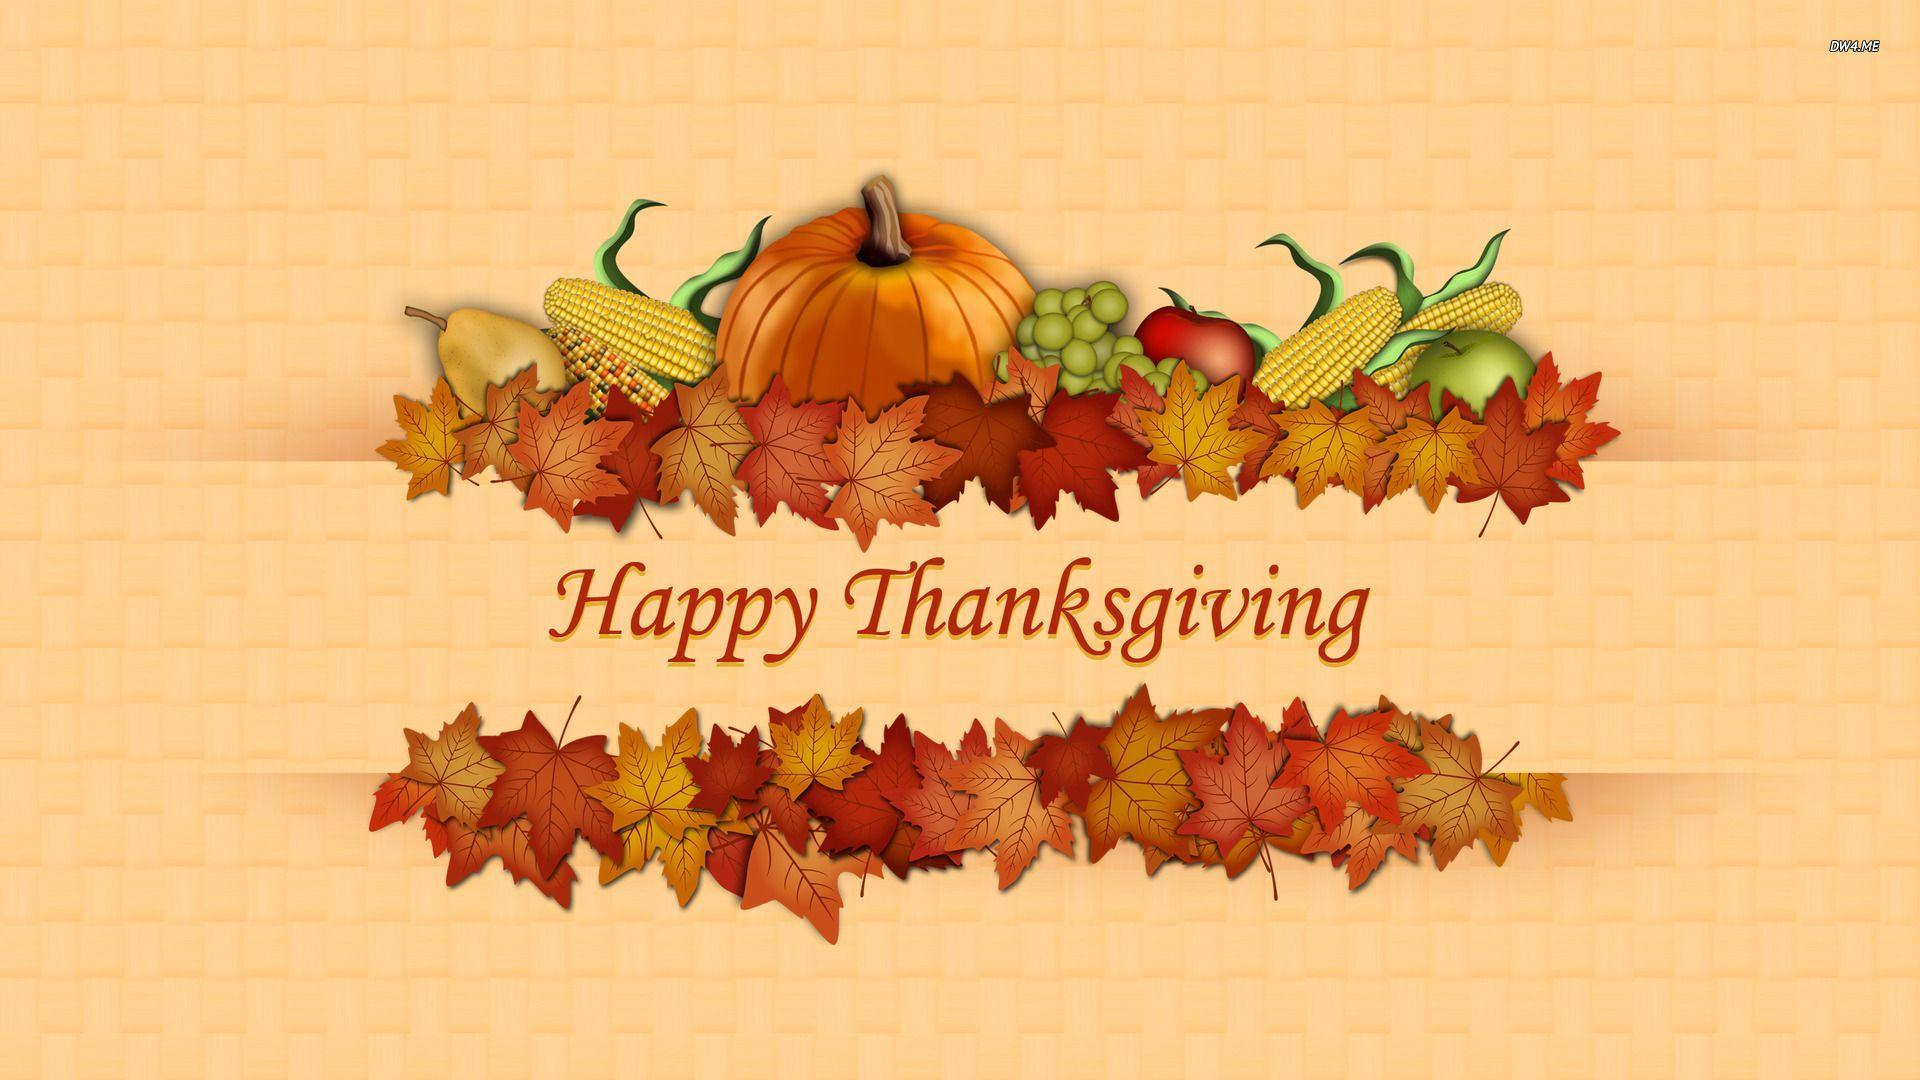 Free Thanksgiving Desktop Backgrounds | Free Happy Thanksgiving ...